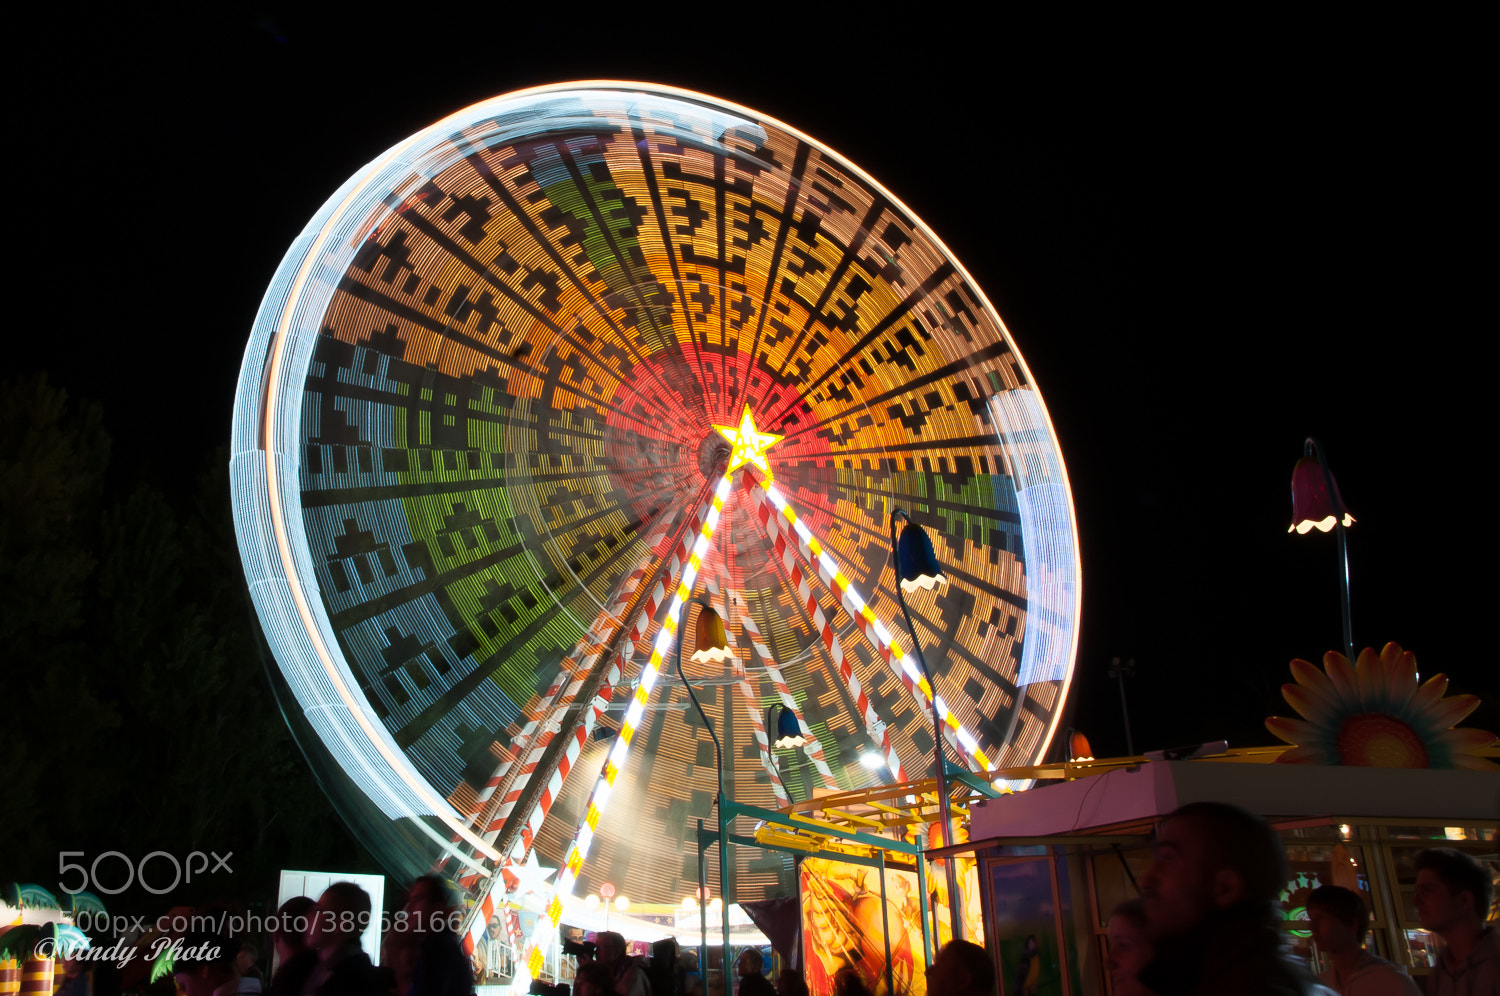 Photograph At the fairground by Andyphoto1 on 500px